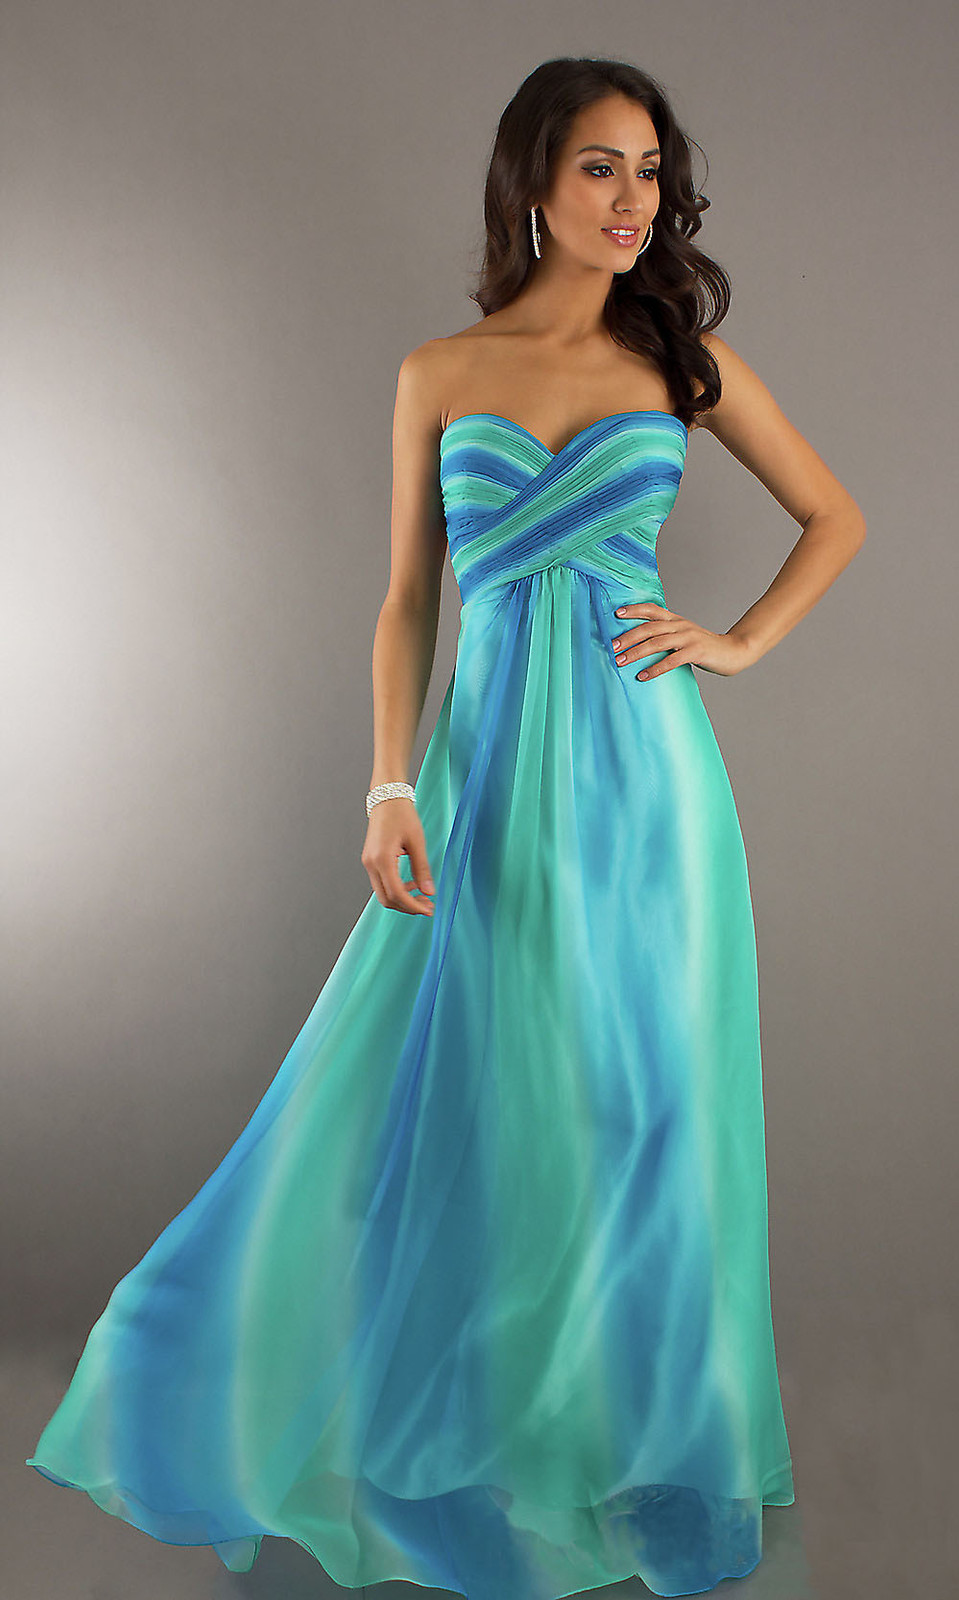 Charmant Farewell Party Dresses Ideen - Brautkleider Ideen ...